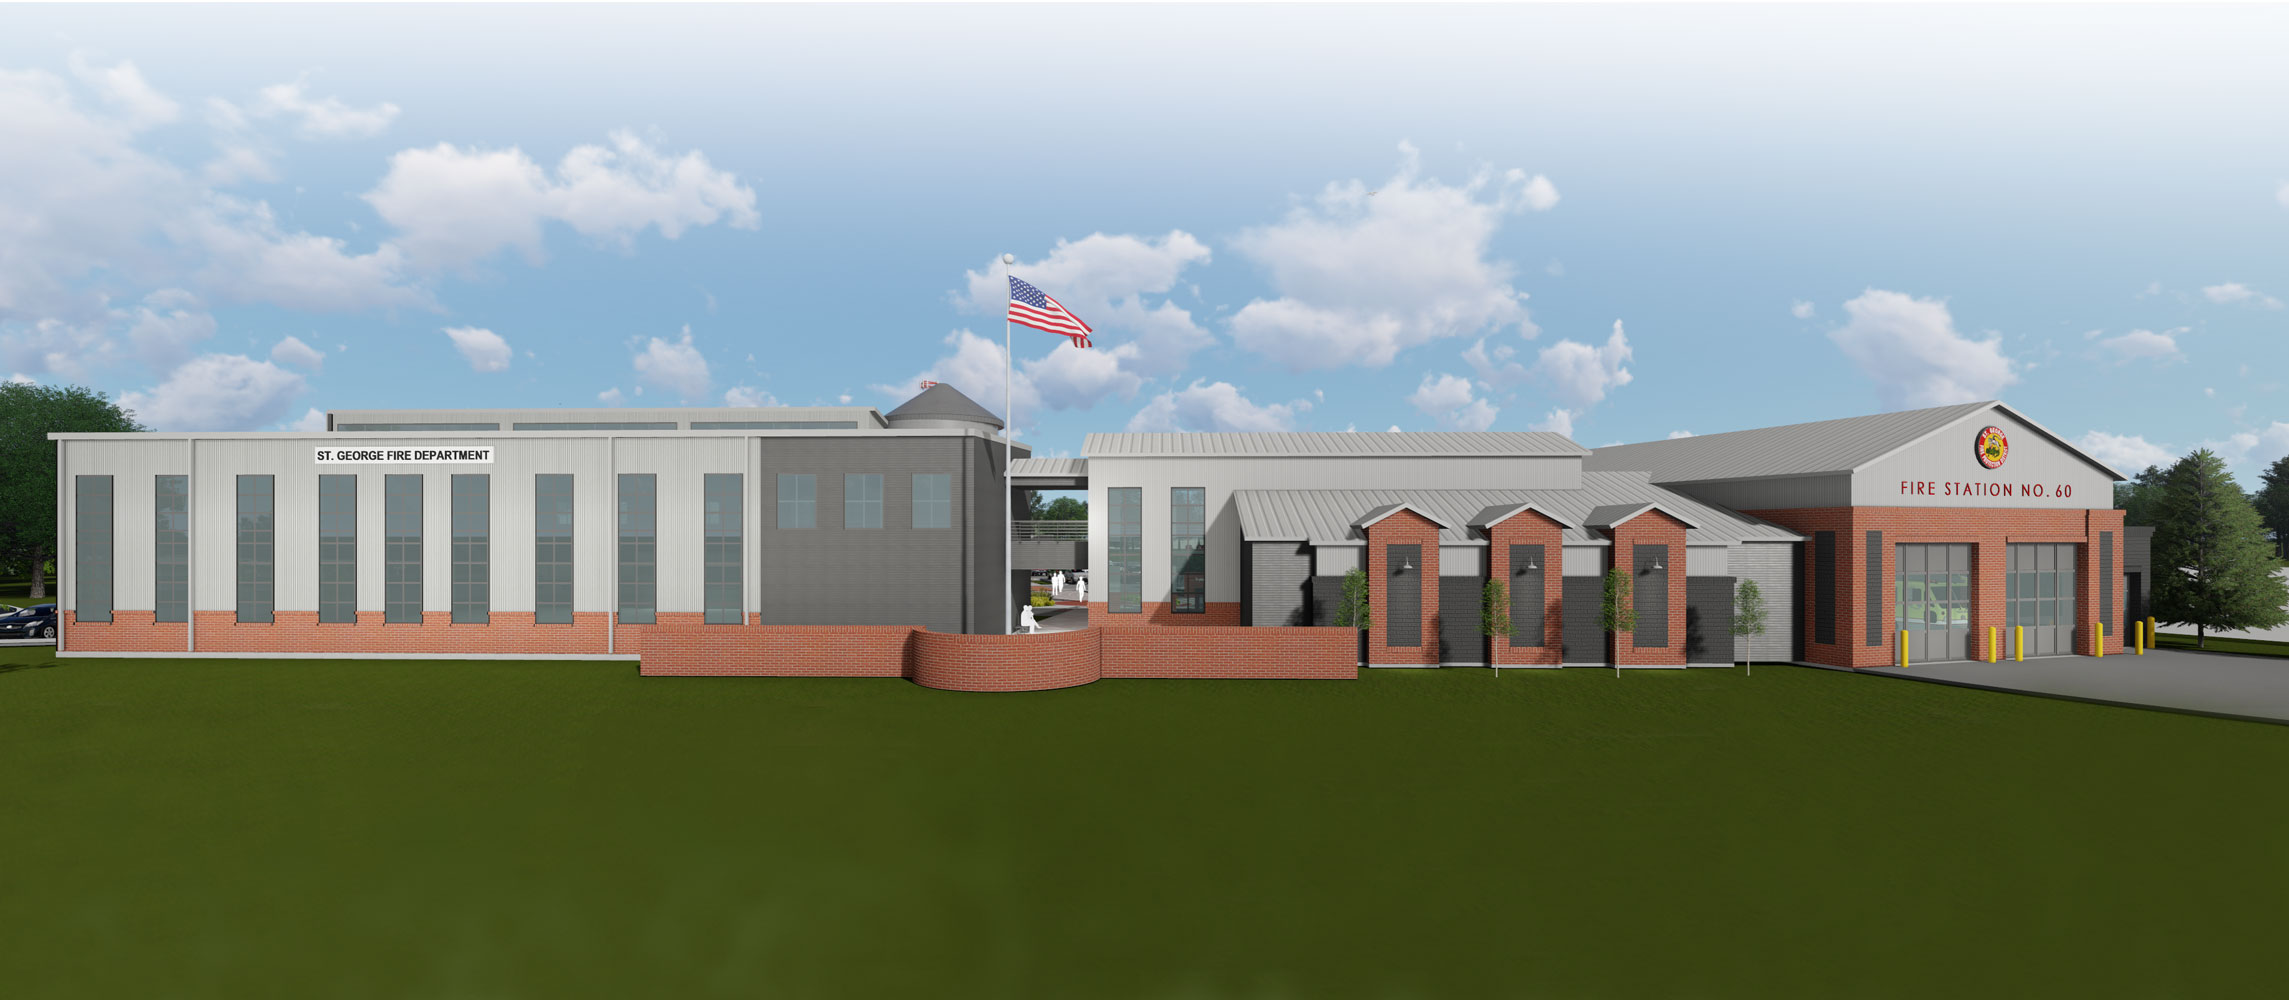 Street view rendering of St. George Fire Department Campus